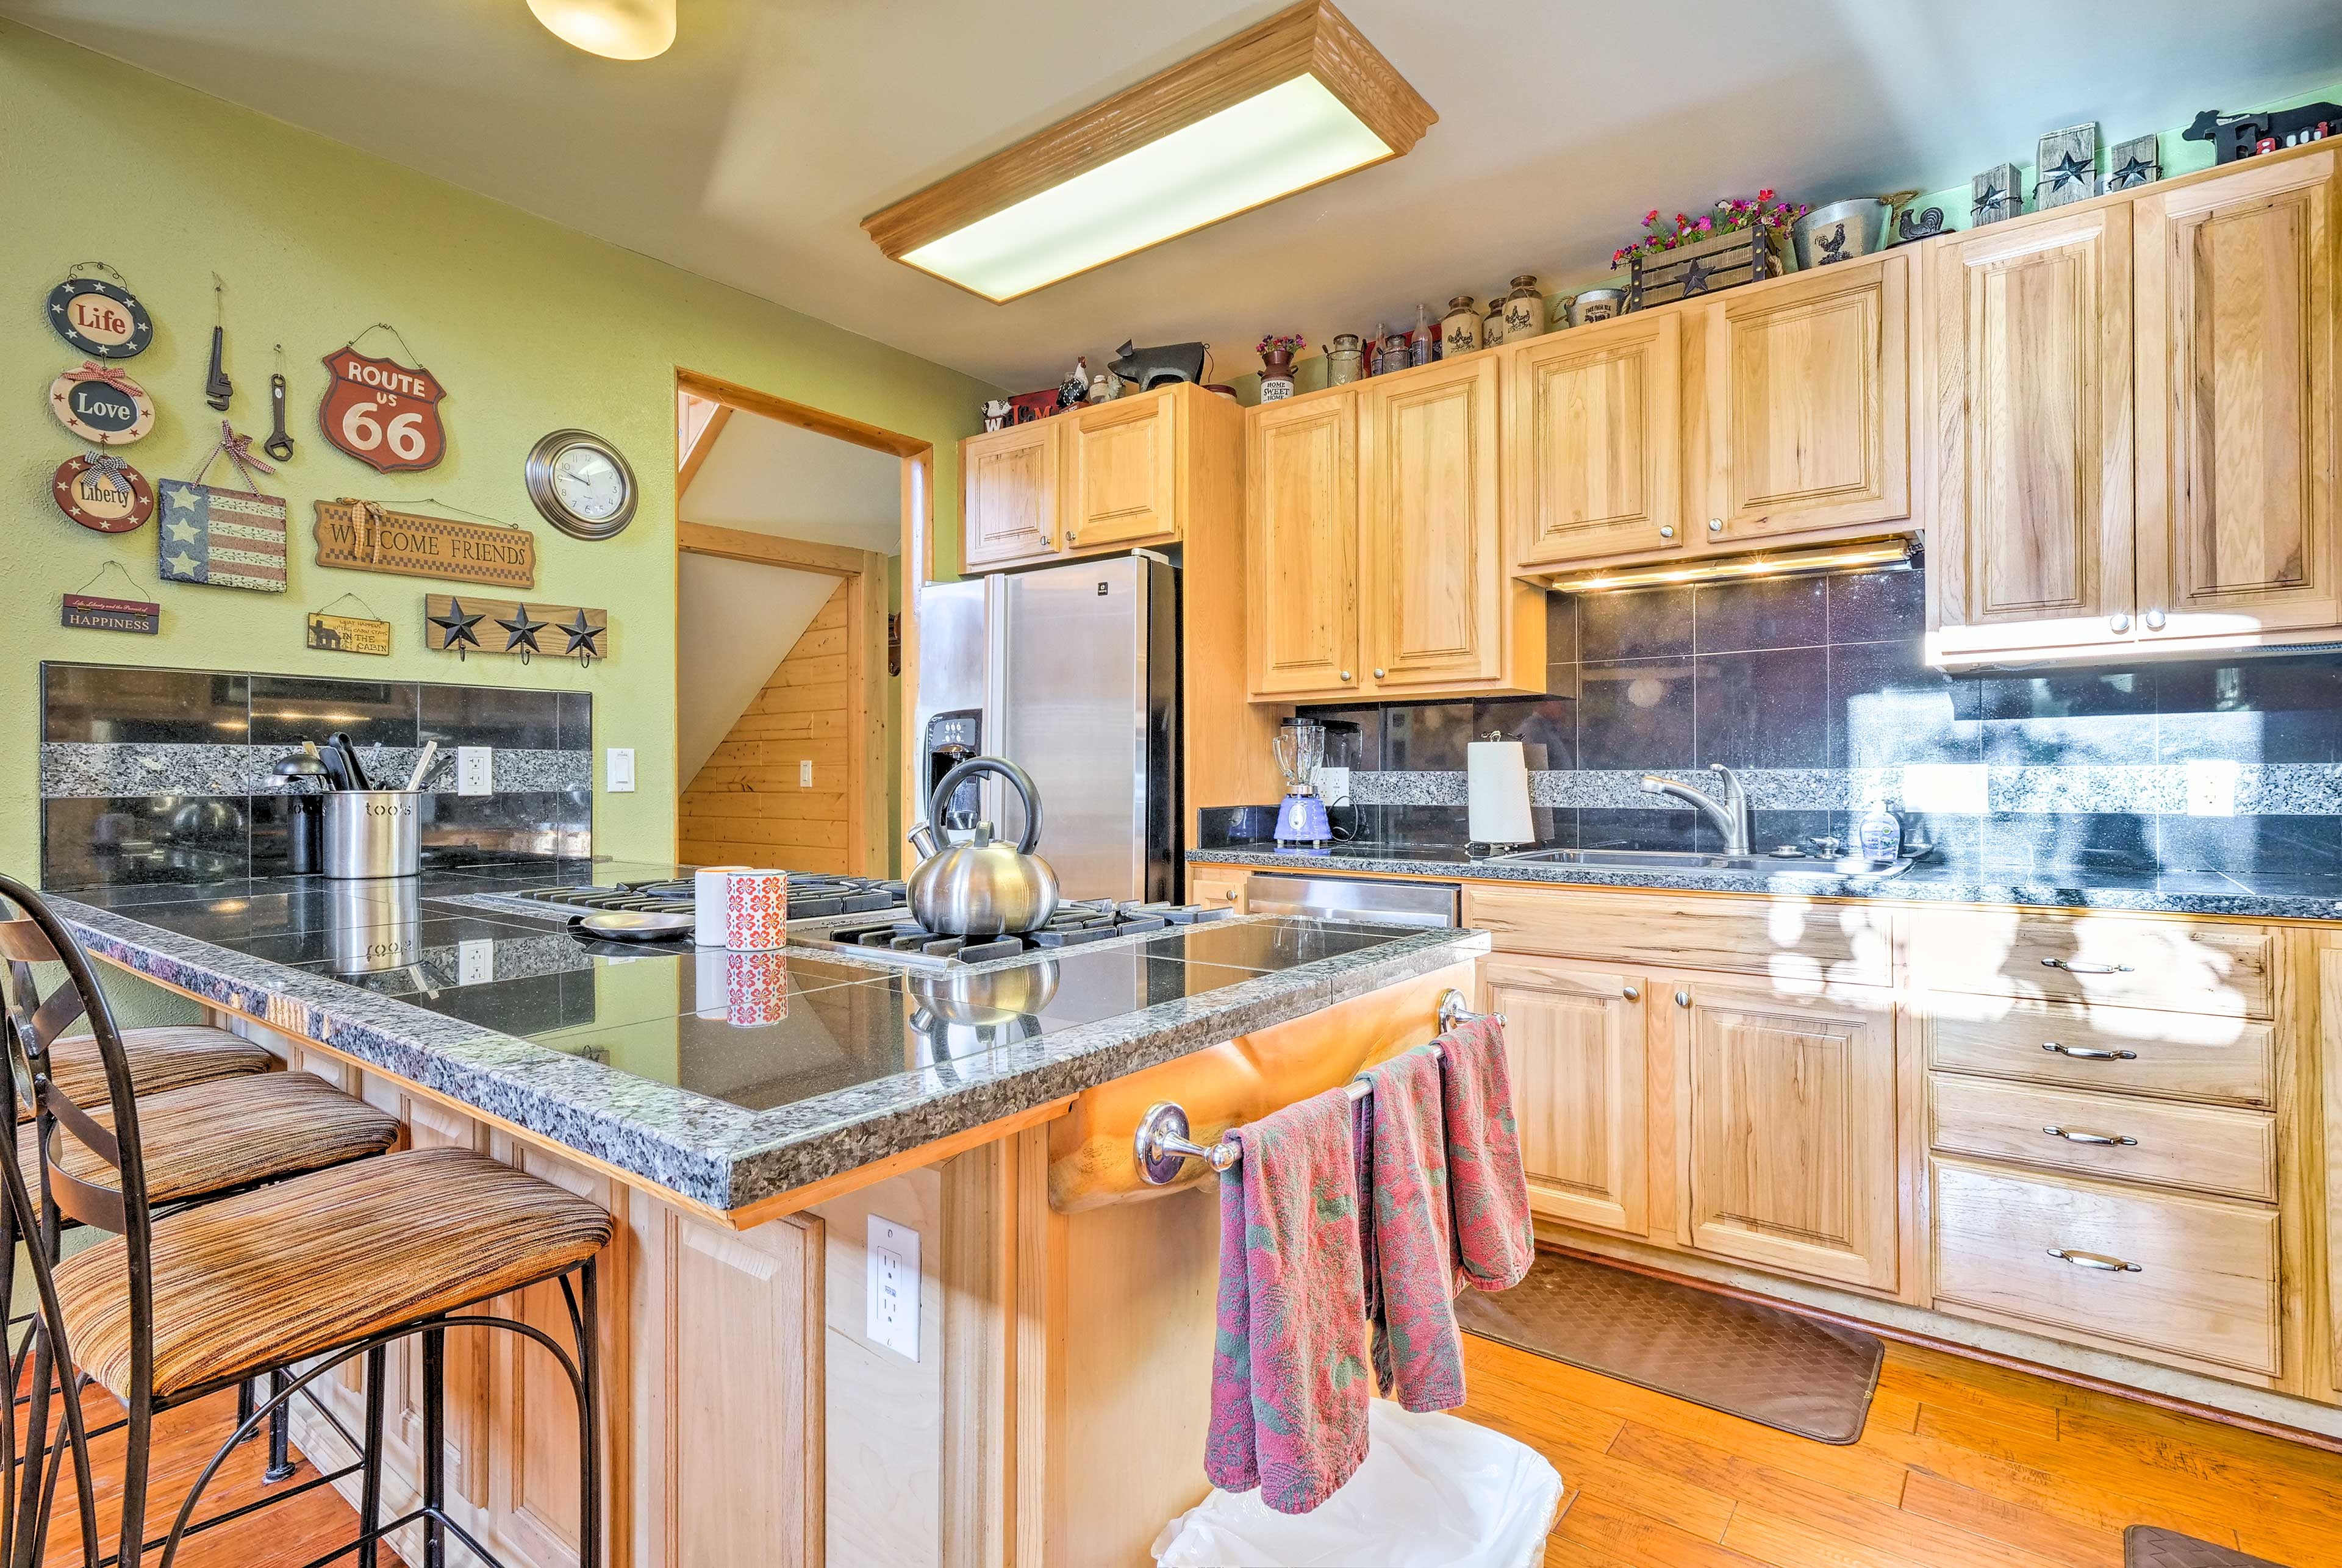 Fully equipped, this kitchen has everything you need to prepare dinner!